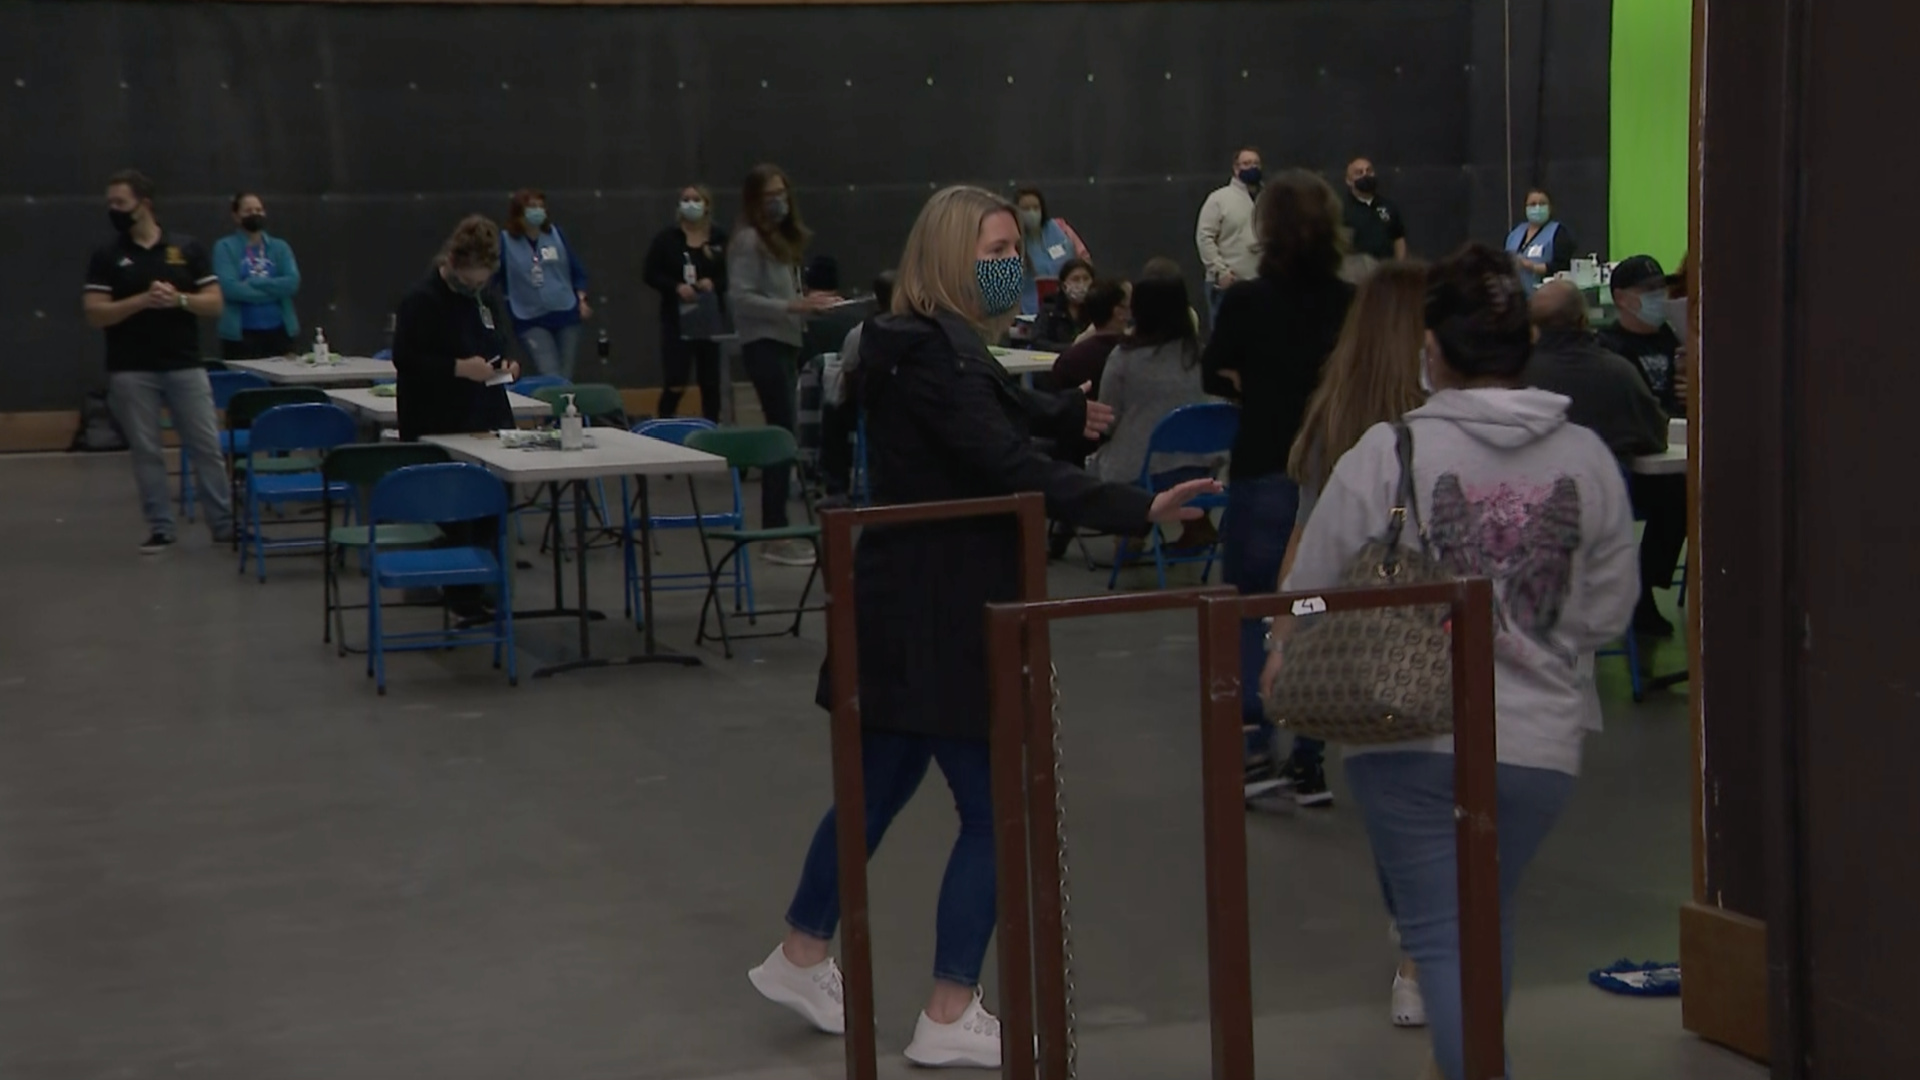 Pop-up COVID-19 vaccine clinics held at Simi Valley Unified School District on Feb. 28, 2021. (KTLA)